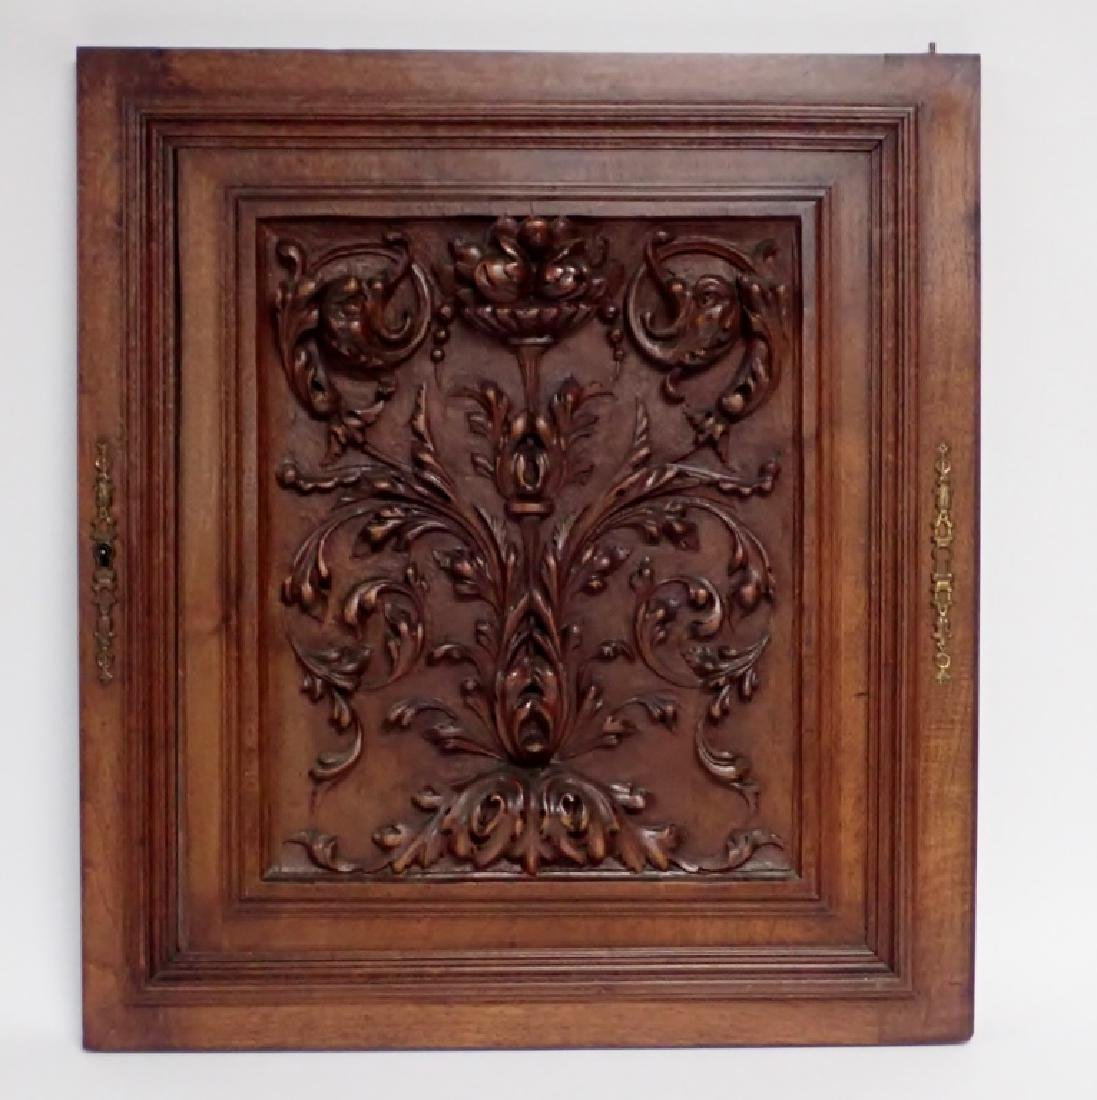 Carved Wooden Element with Floral Motif